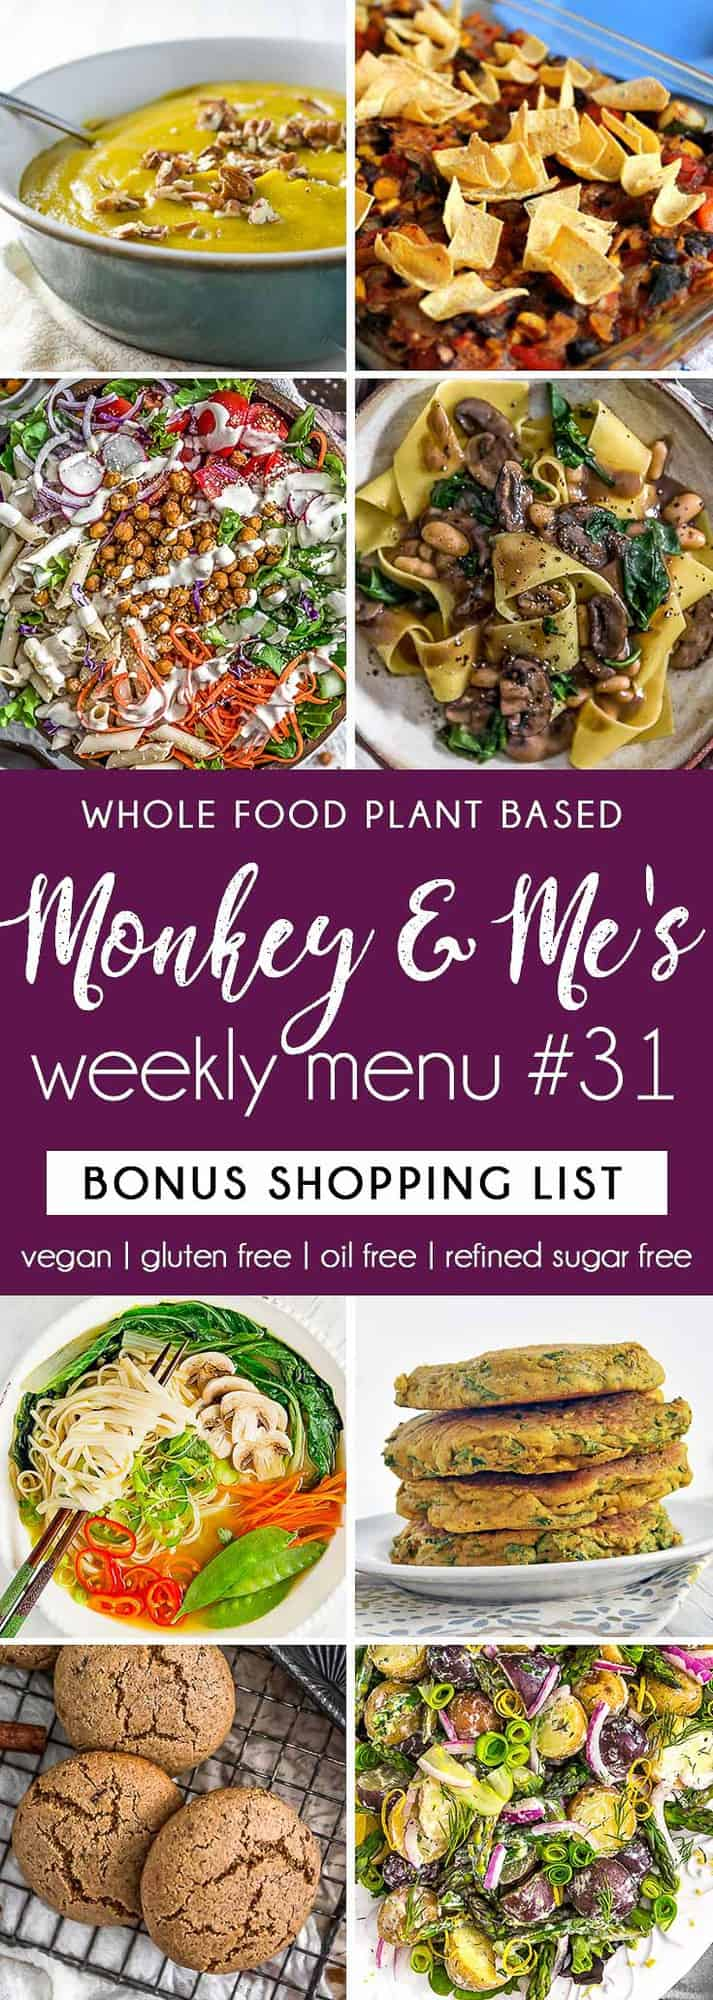 Monkey and Me's Menu 31 featuring 4 recipes